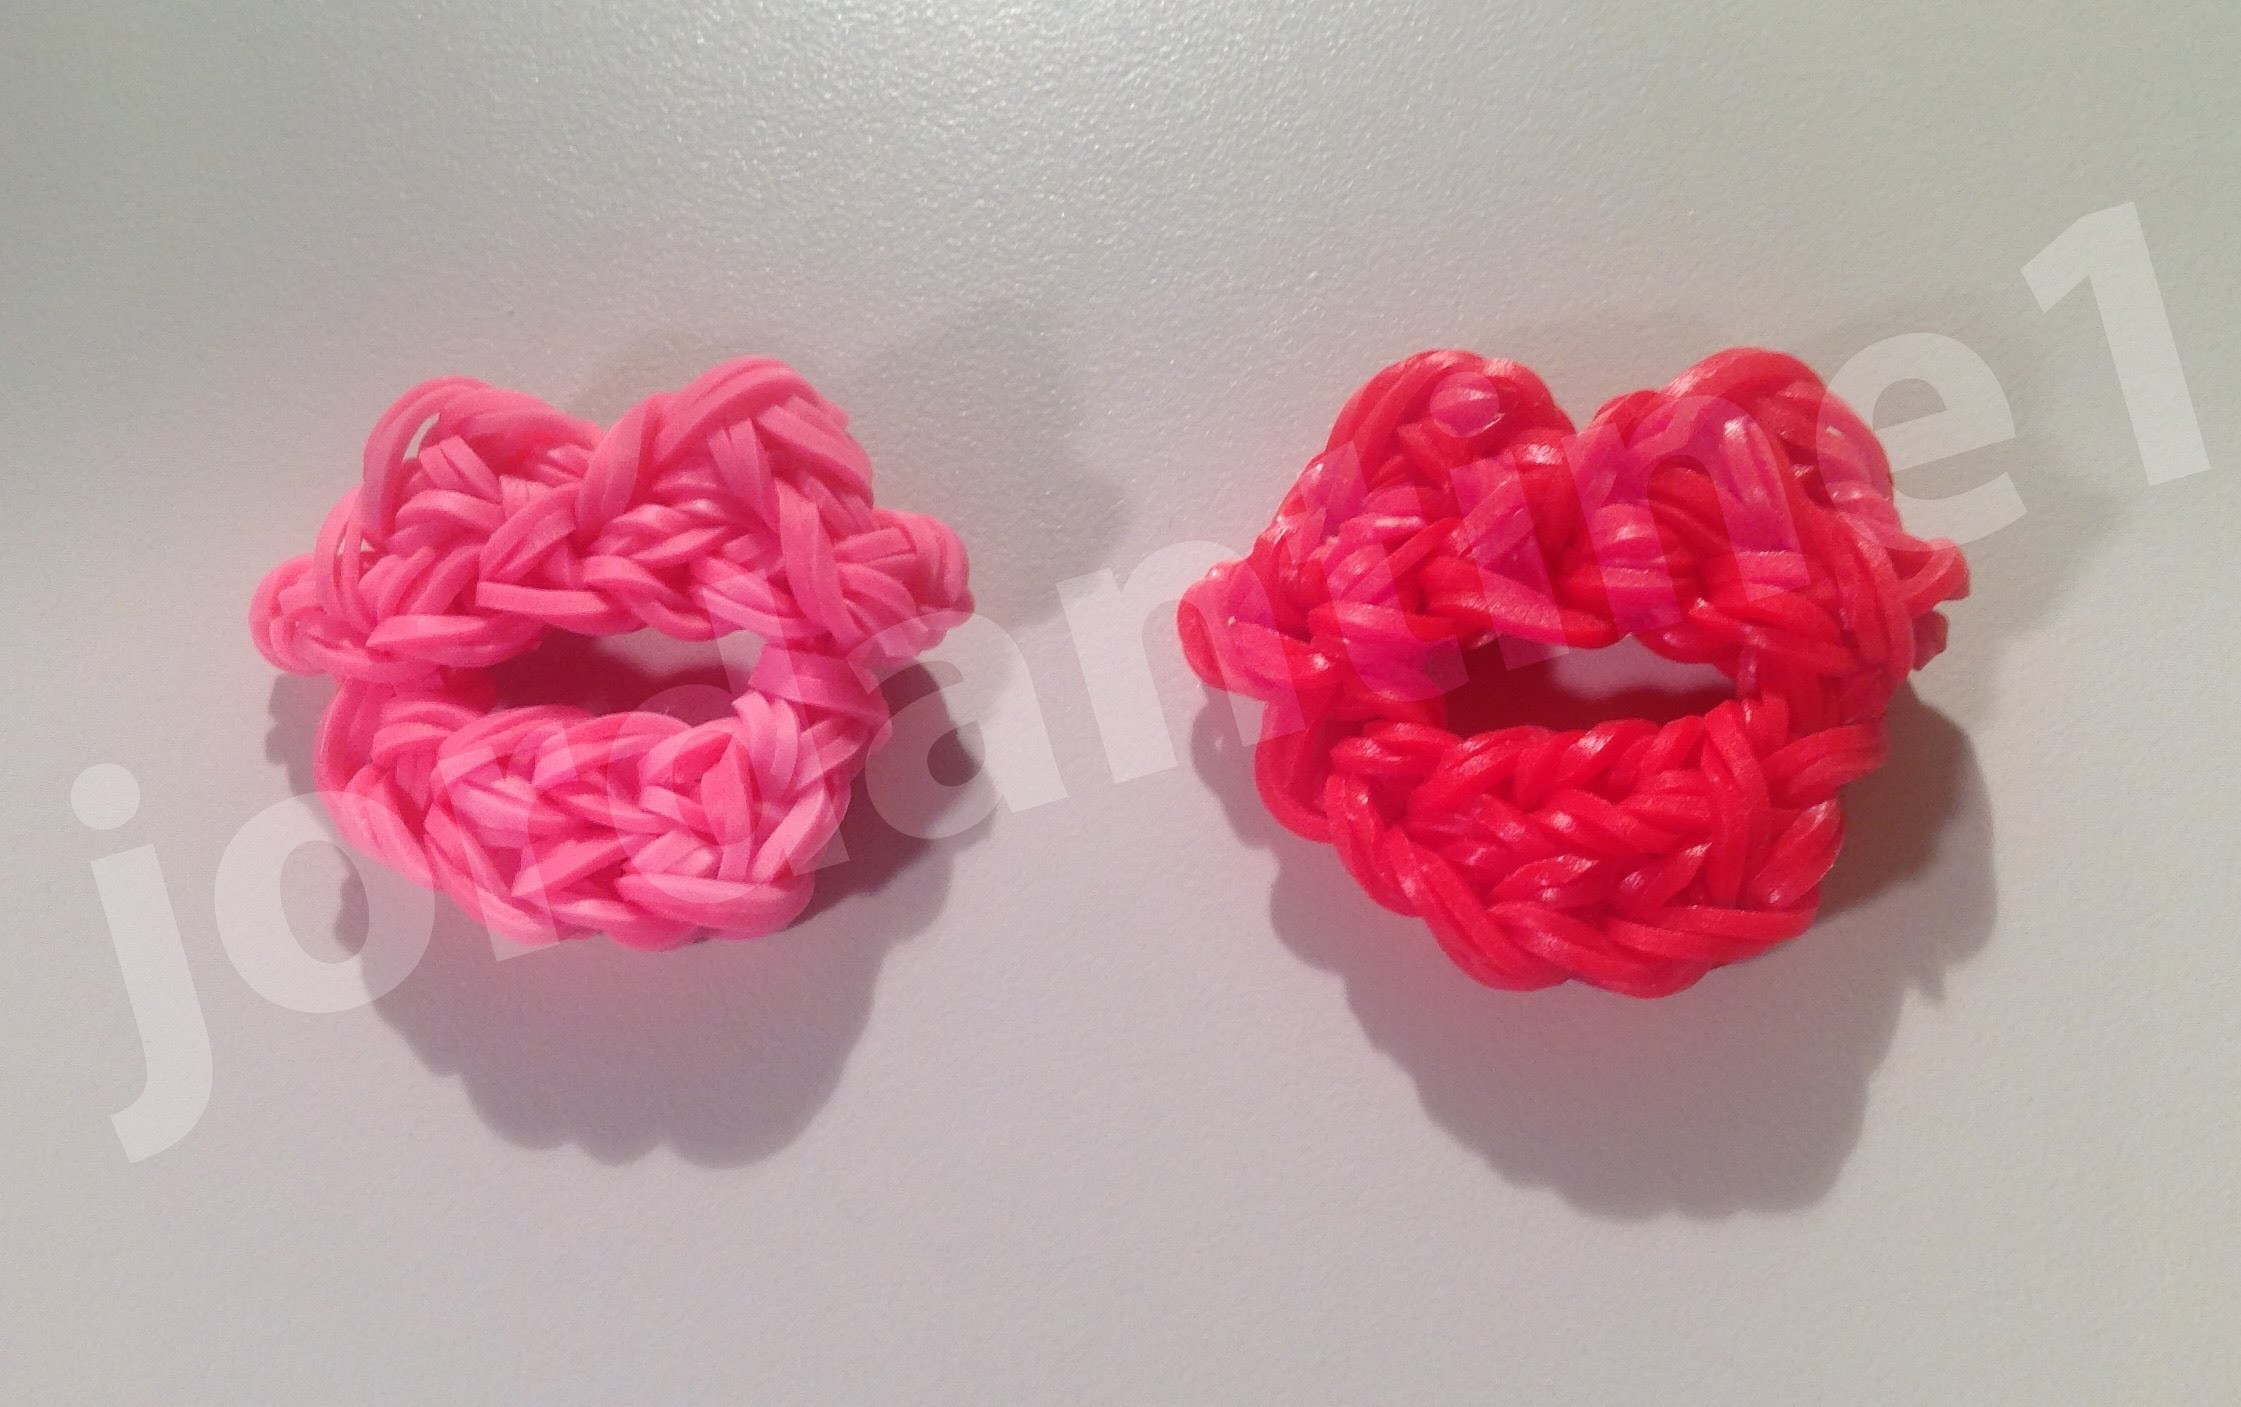 How To Make A Small Pair Of Lips - Valentine's Day Kiss - Rainbow Loom, Crazy Loom, Bandaloom